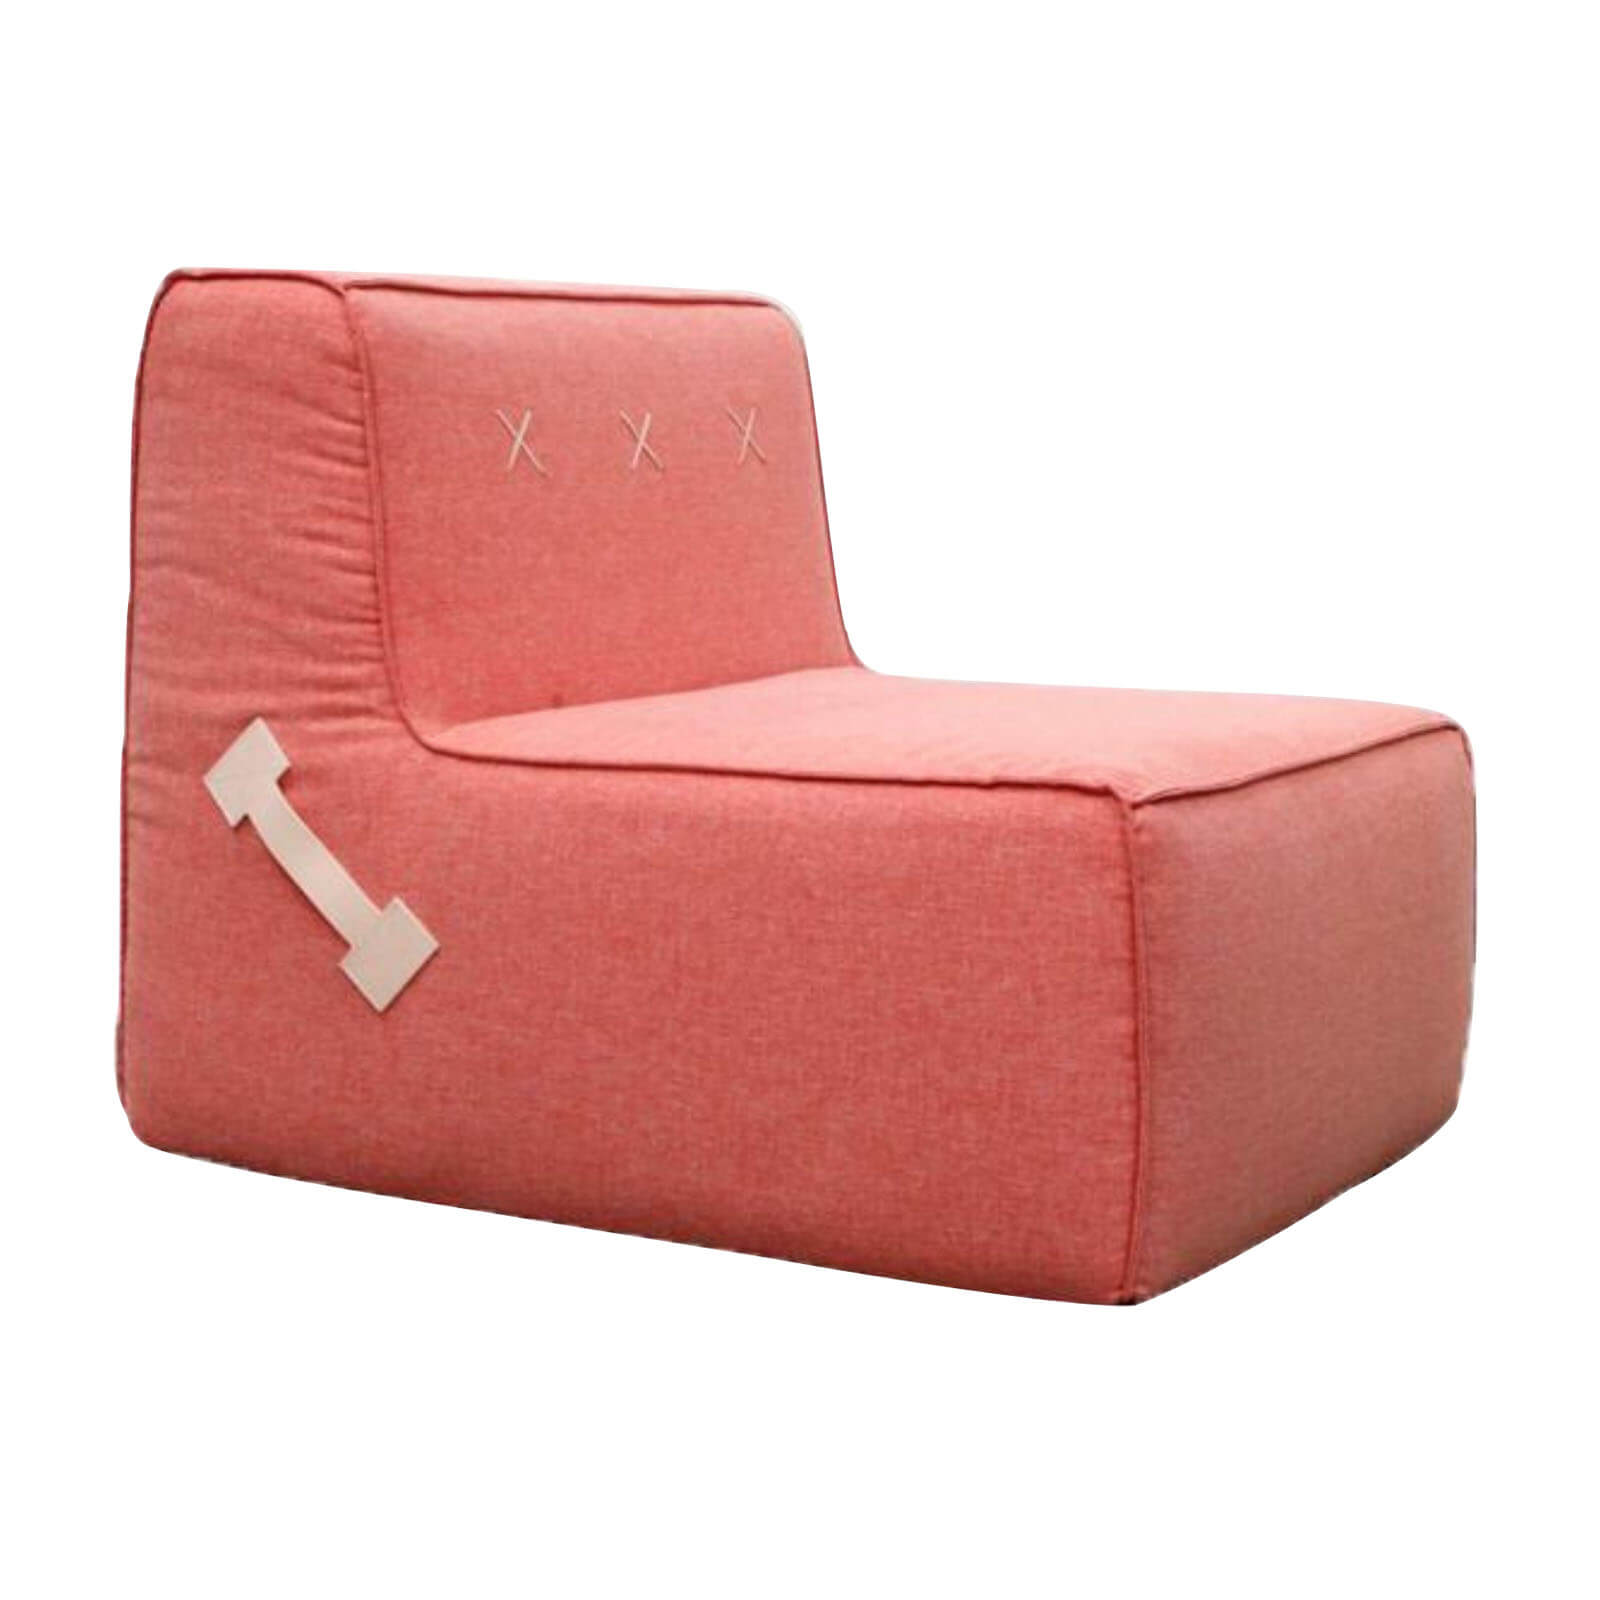 Two Design Lovers Koskela Quadrant Soft Sofa pink